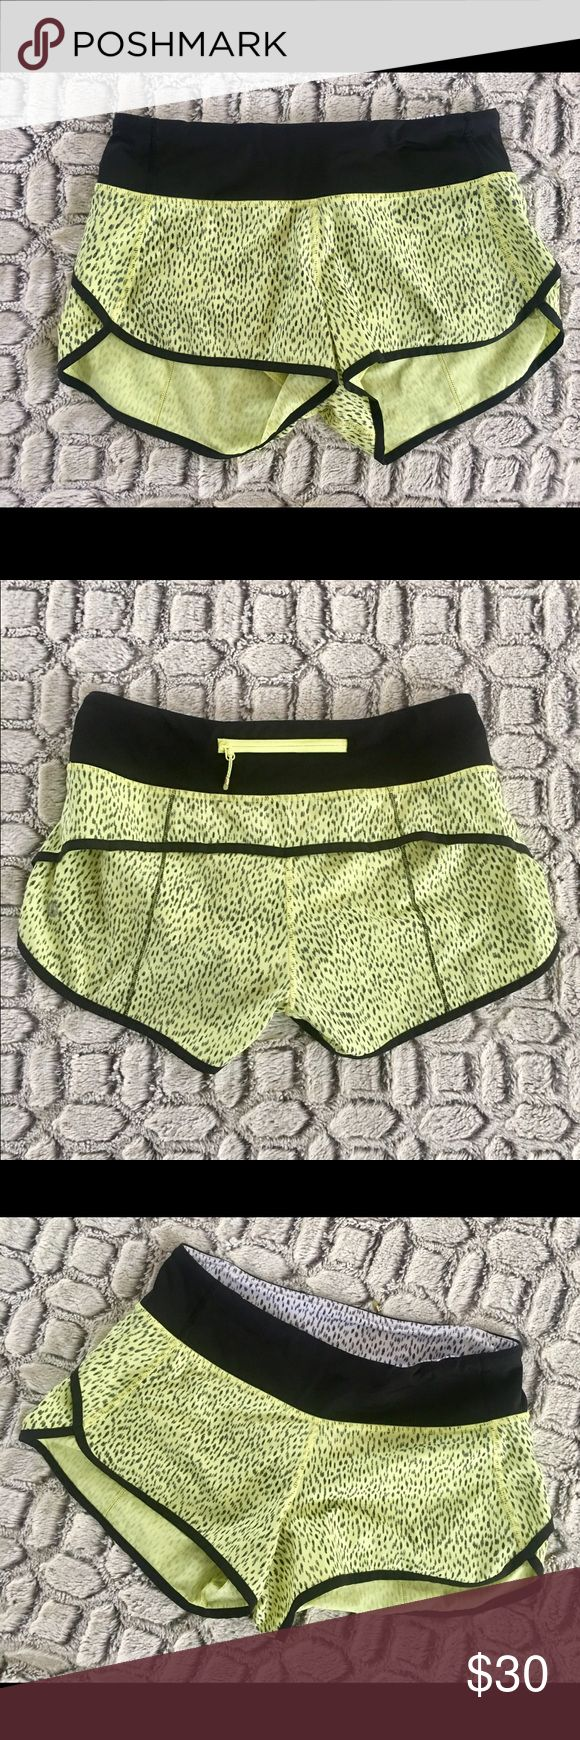 lululemon Neon Running Shorts - Size 4 lululemon Neon Running Shorts - Size 4. Gently used; excellent condition. No rips, tears, or stains. lululemon athletica Shorts